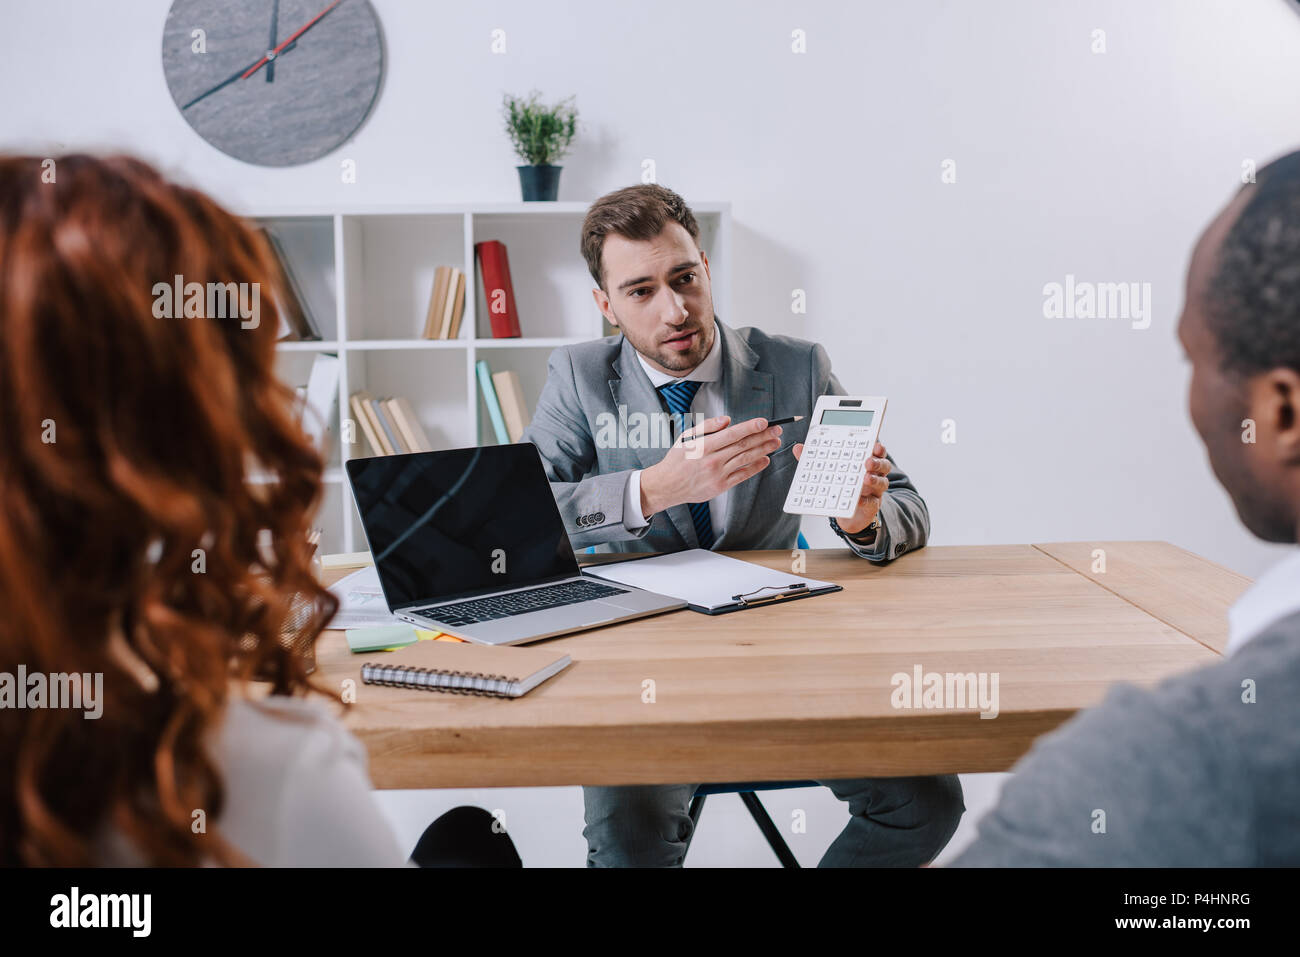 Financial adviser showing calculation while clients sitting at table with laptop - Stock Image